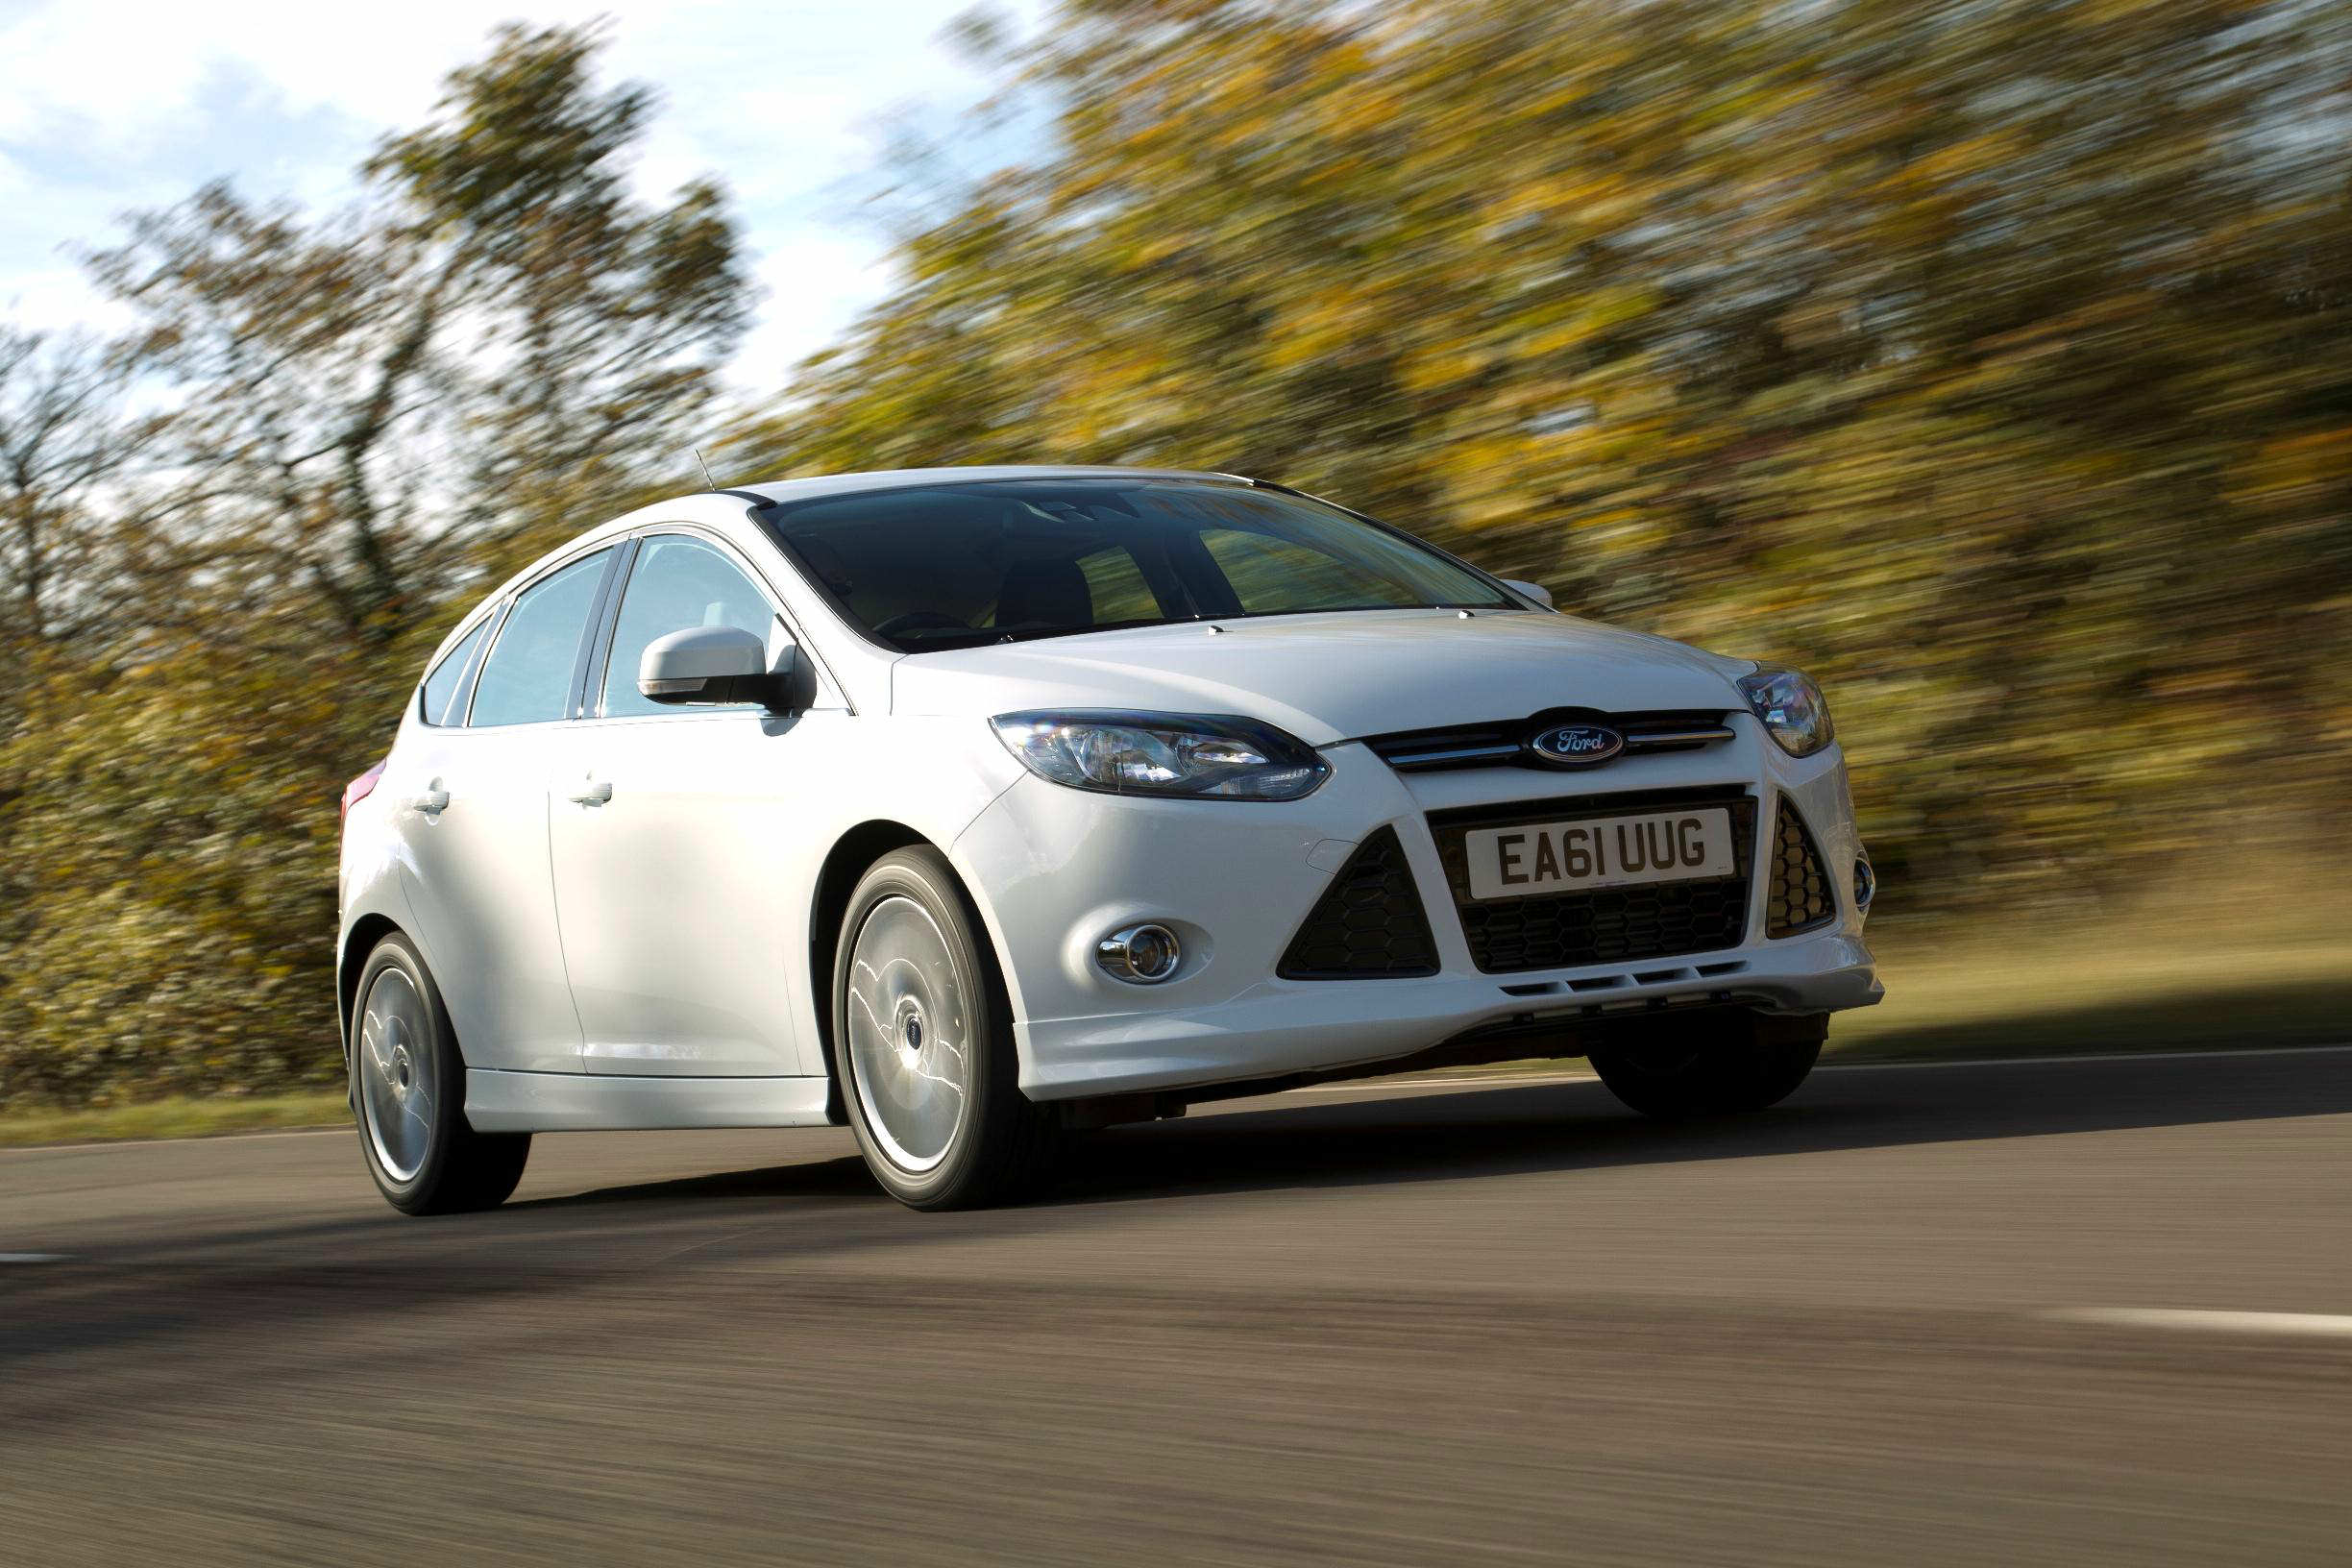 image of a white ford focus car on a country road